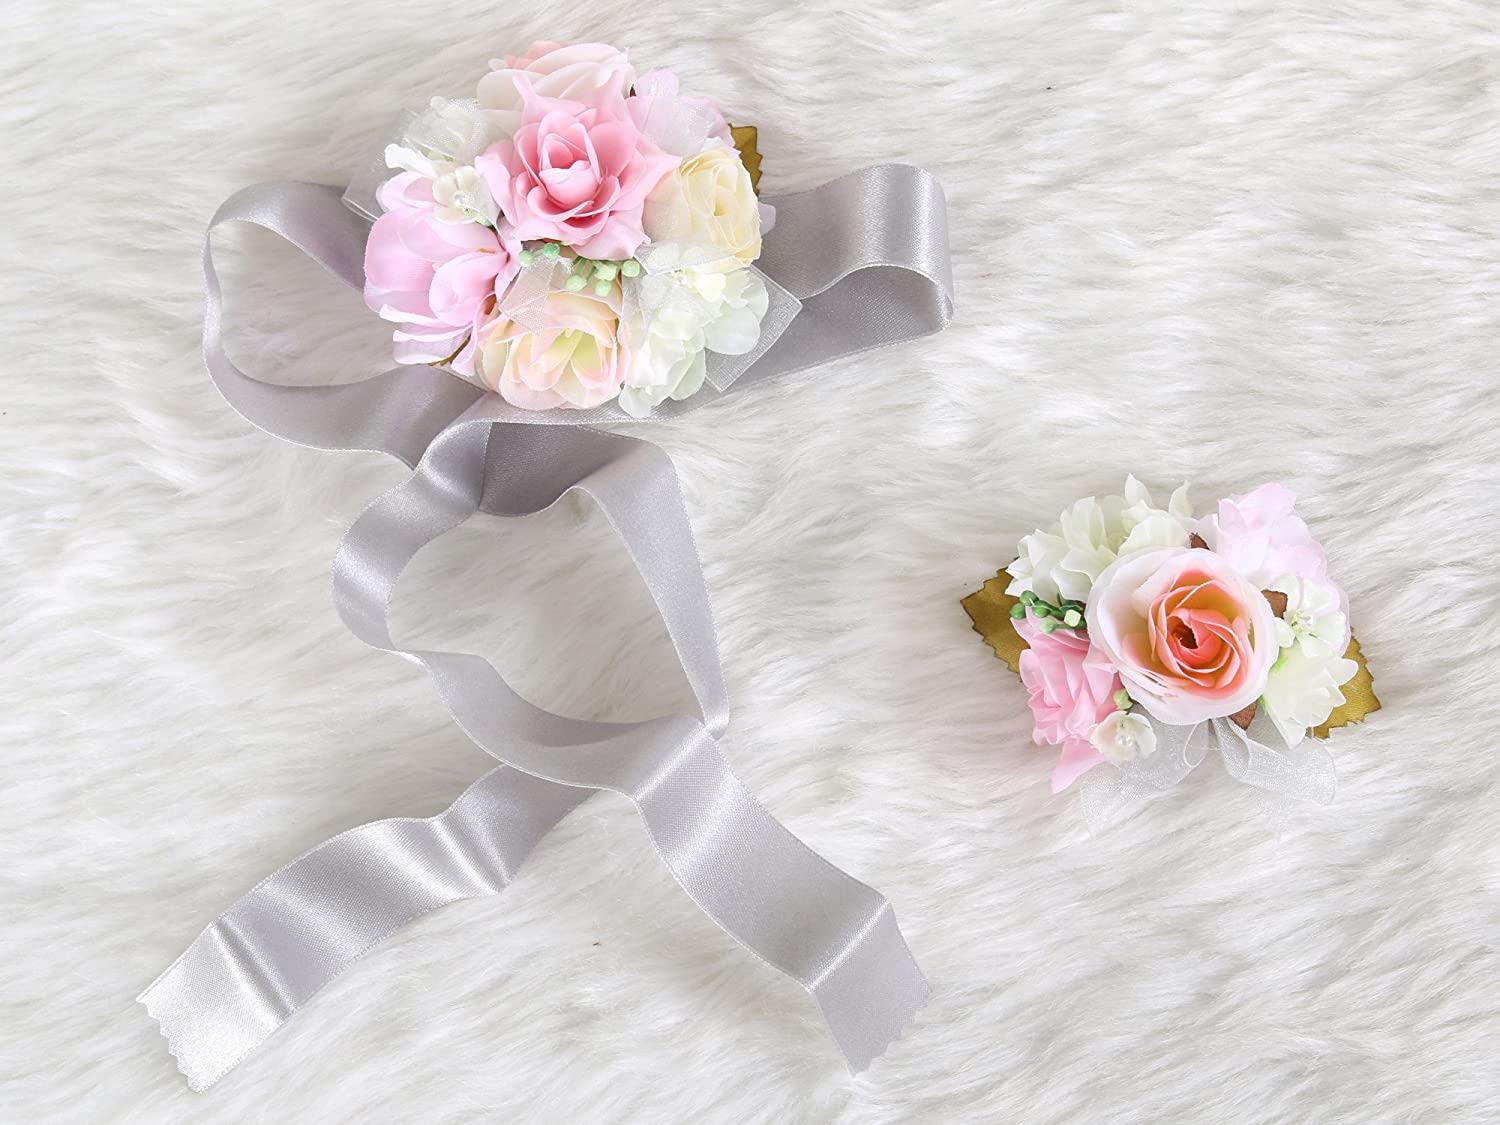 Wedding Prom Wrist Corsage Silk rose and Boutonniere Set Pin Ribbon Included (Pink Gray theme)